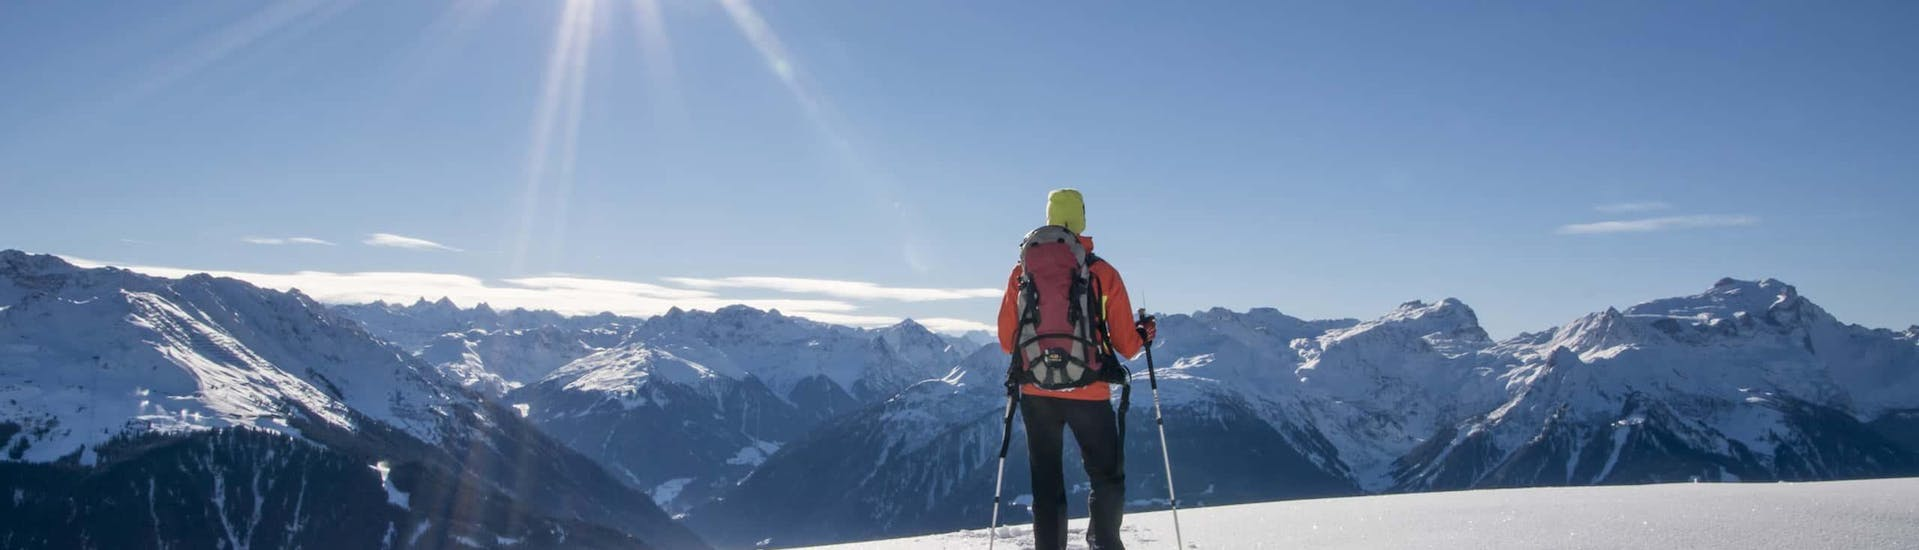 A hiker is overlooking the mountainous panorama while on one of the Private Snowshoeing Tour with Kurt organised by Kurt Ladner.